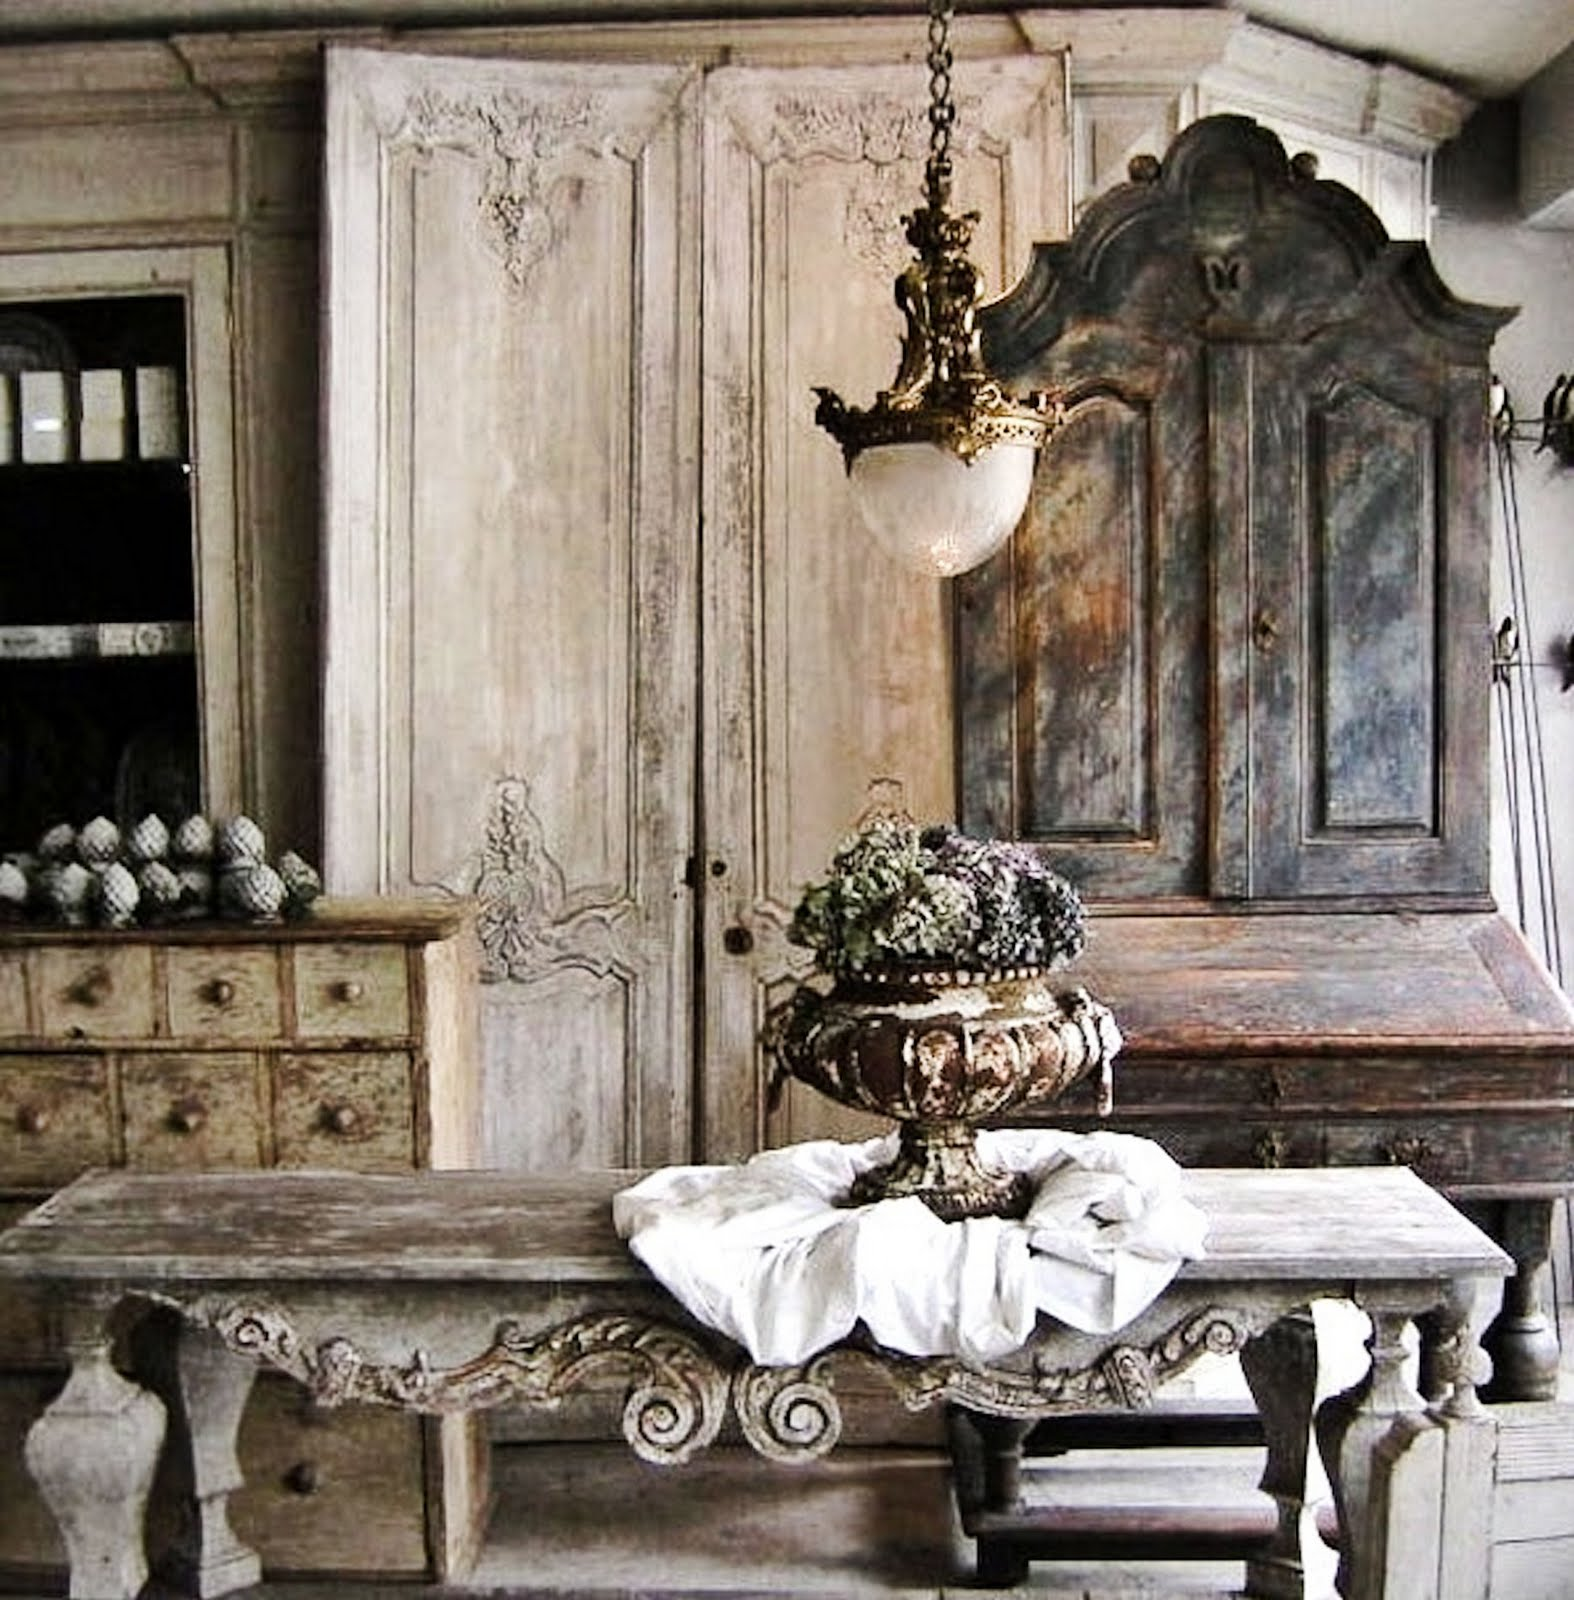 French eclectic interior design kids art decorating ideas Vintage interior